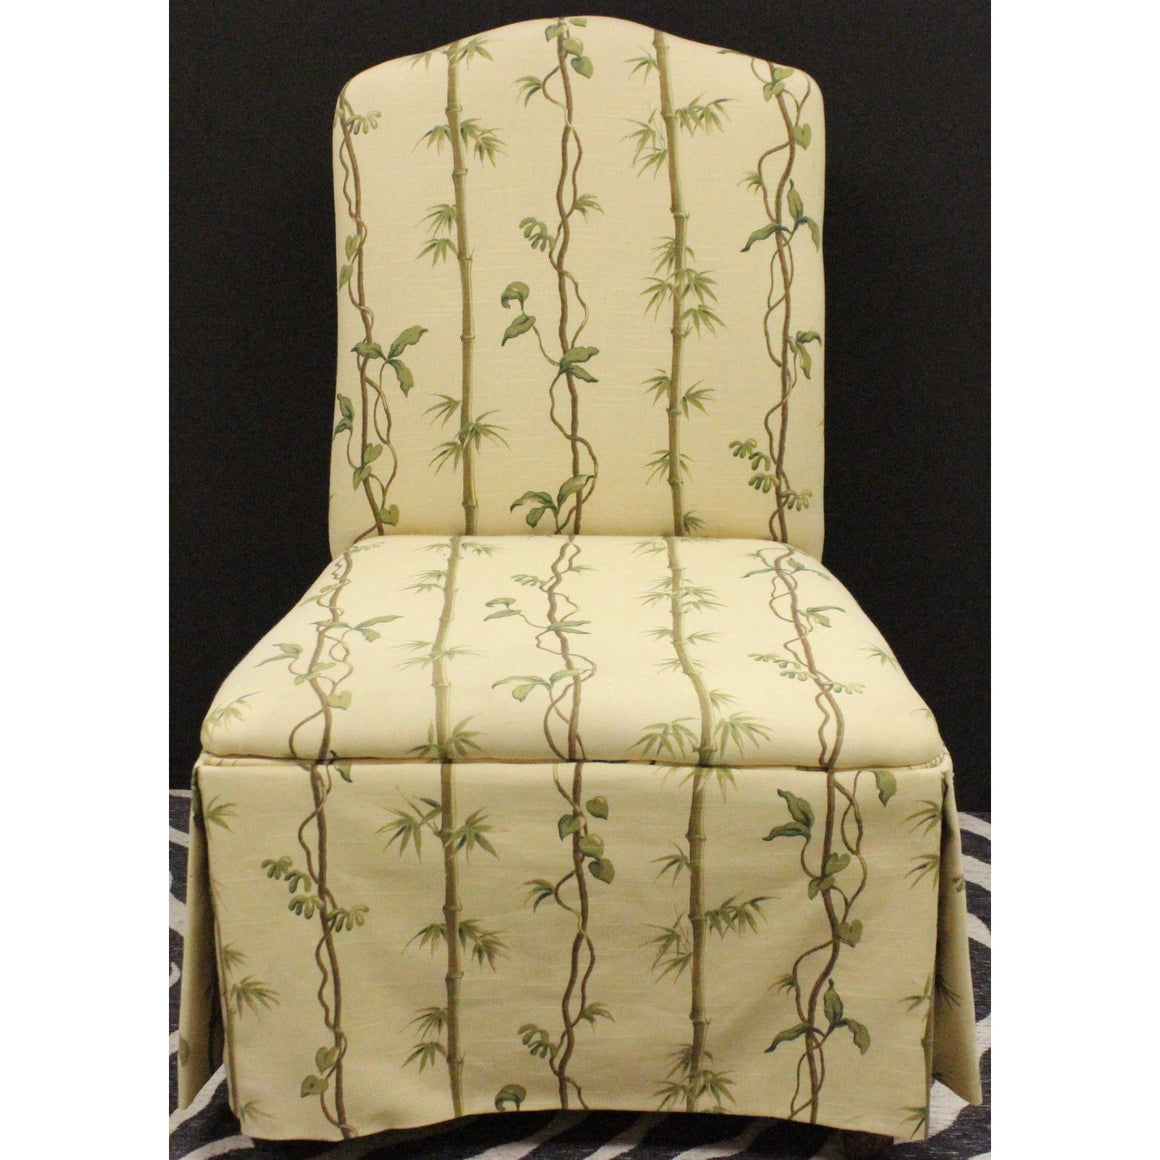 Children's Slipper Chair w/ Bamboo Print Fabric